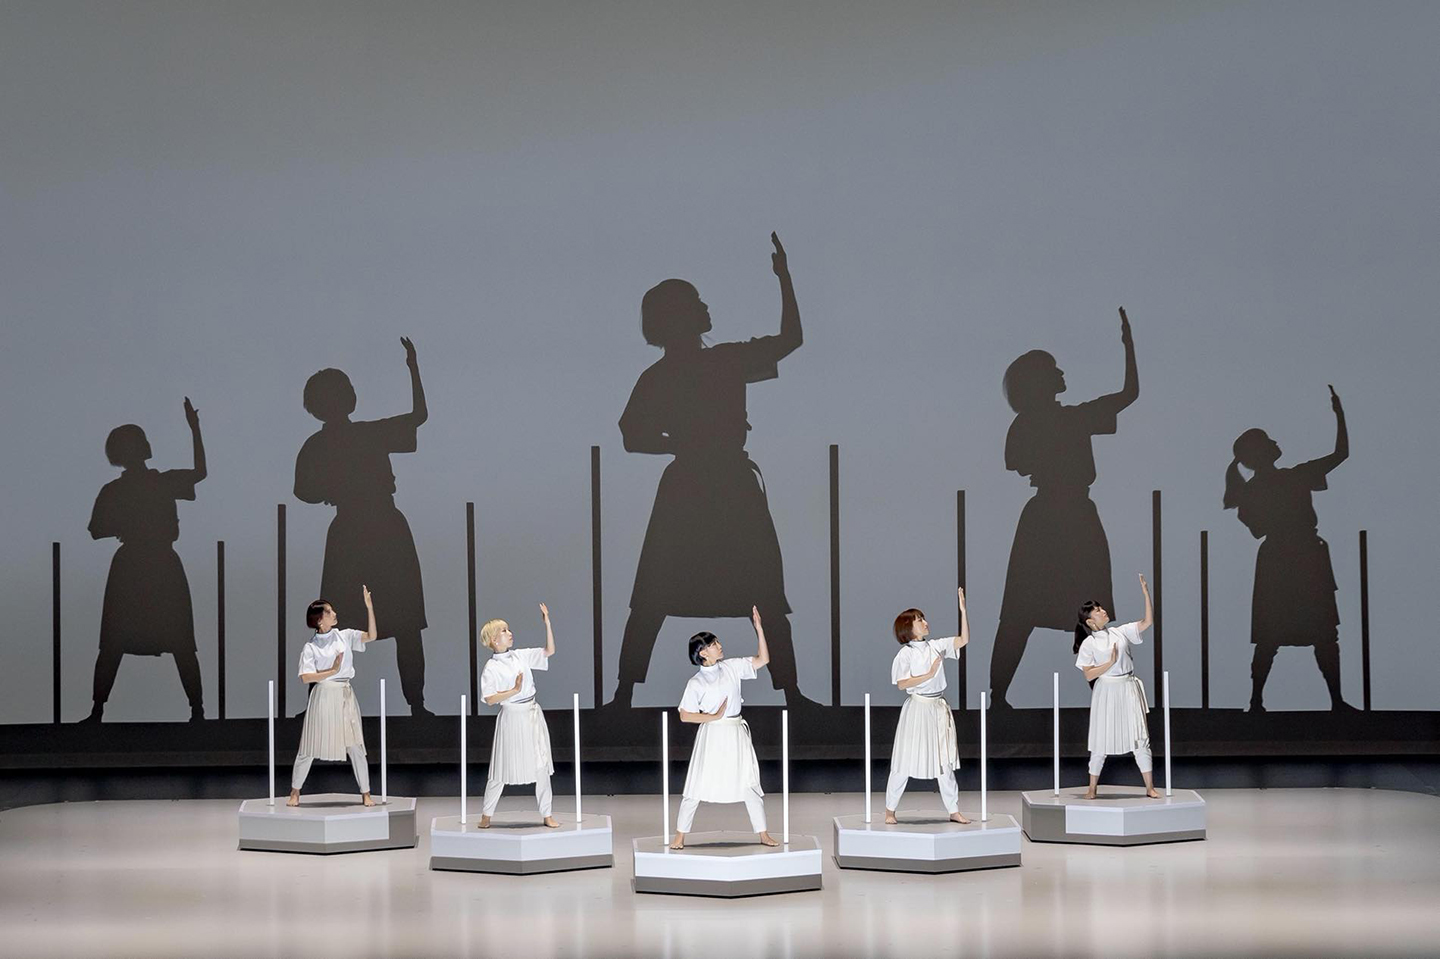 Rhizomatiks Research × ELEVENPLAY × Kyle McDonald,  discrete figures Special Edition, 6 Oct. 2019  Sapporo Cultural Art Theater hitaru  produced by Sapporo Cultural Art Theater hitaru, Rhizomatiks  ©kenzo kosuge